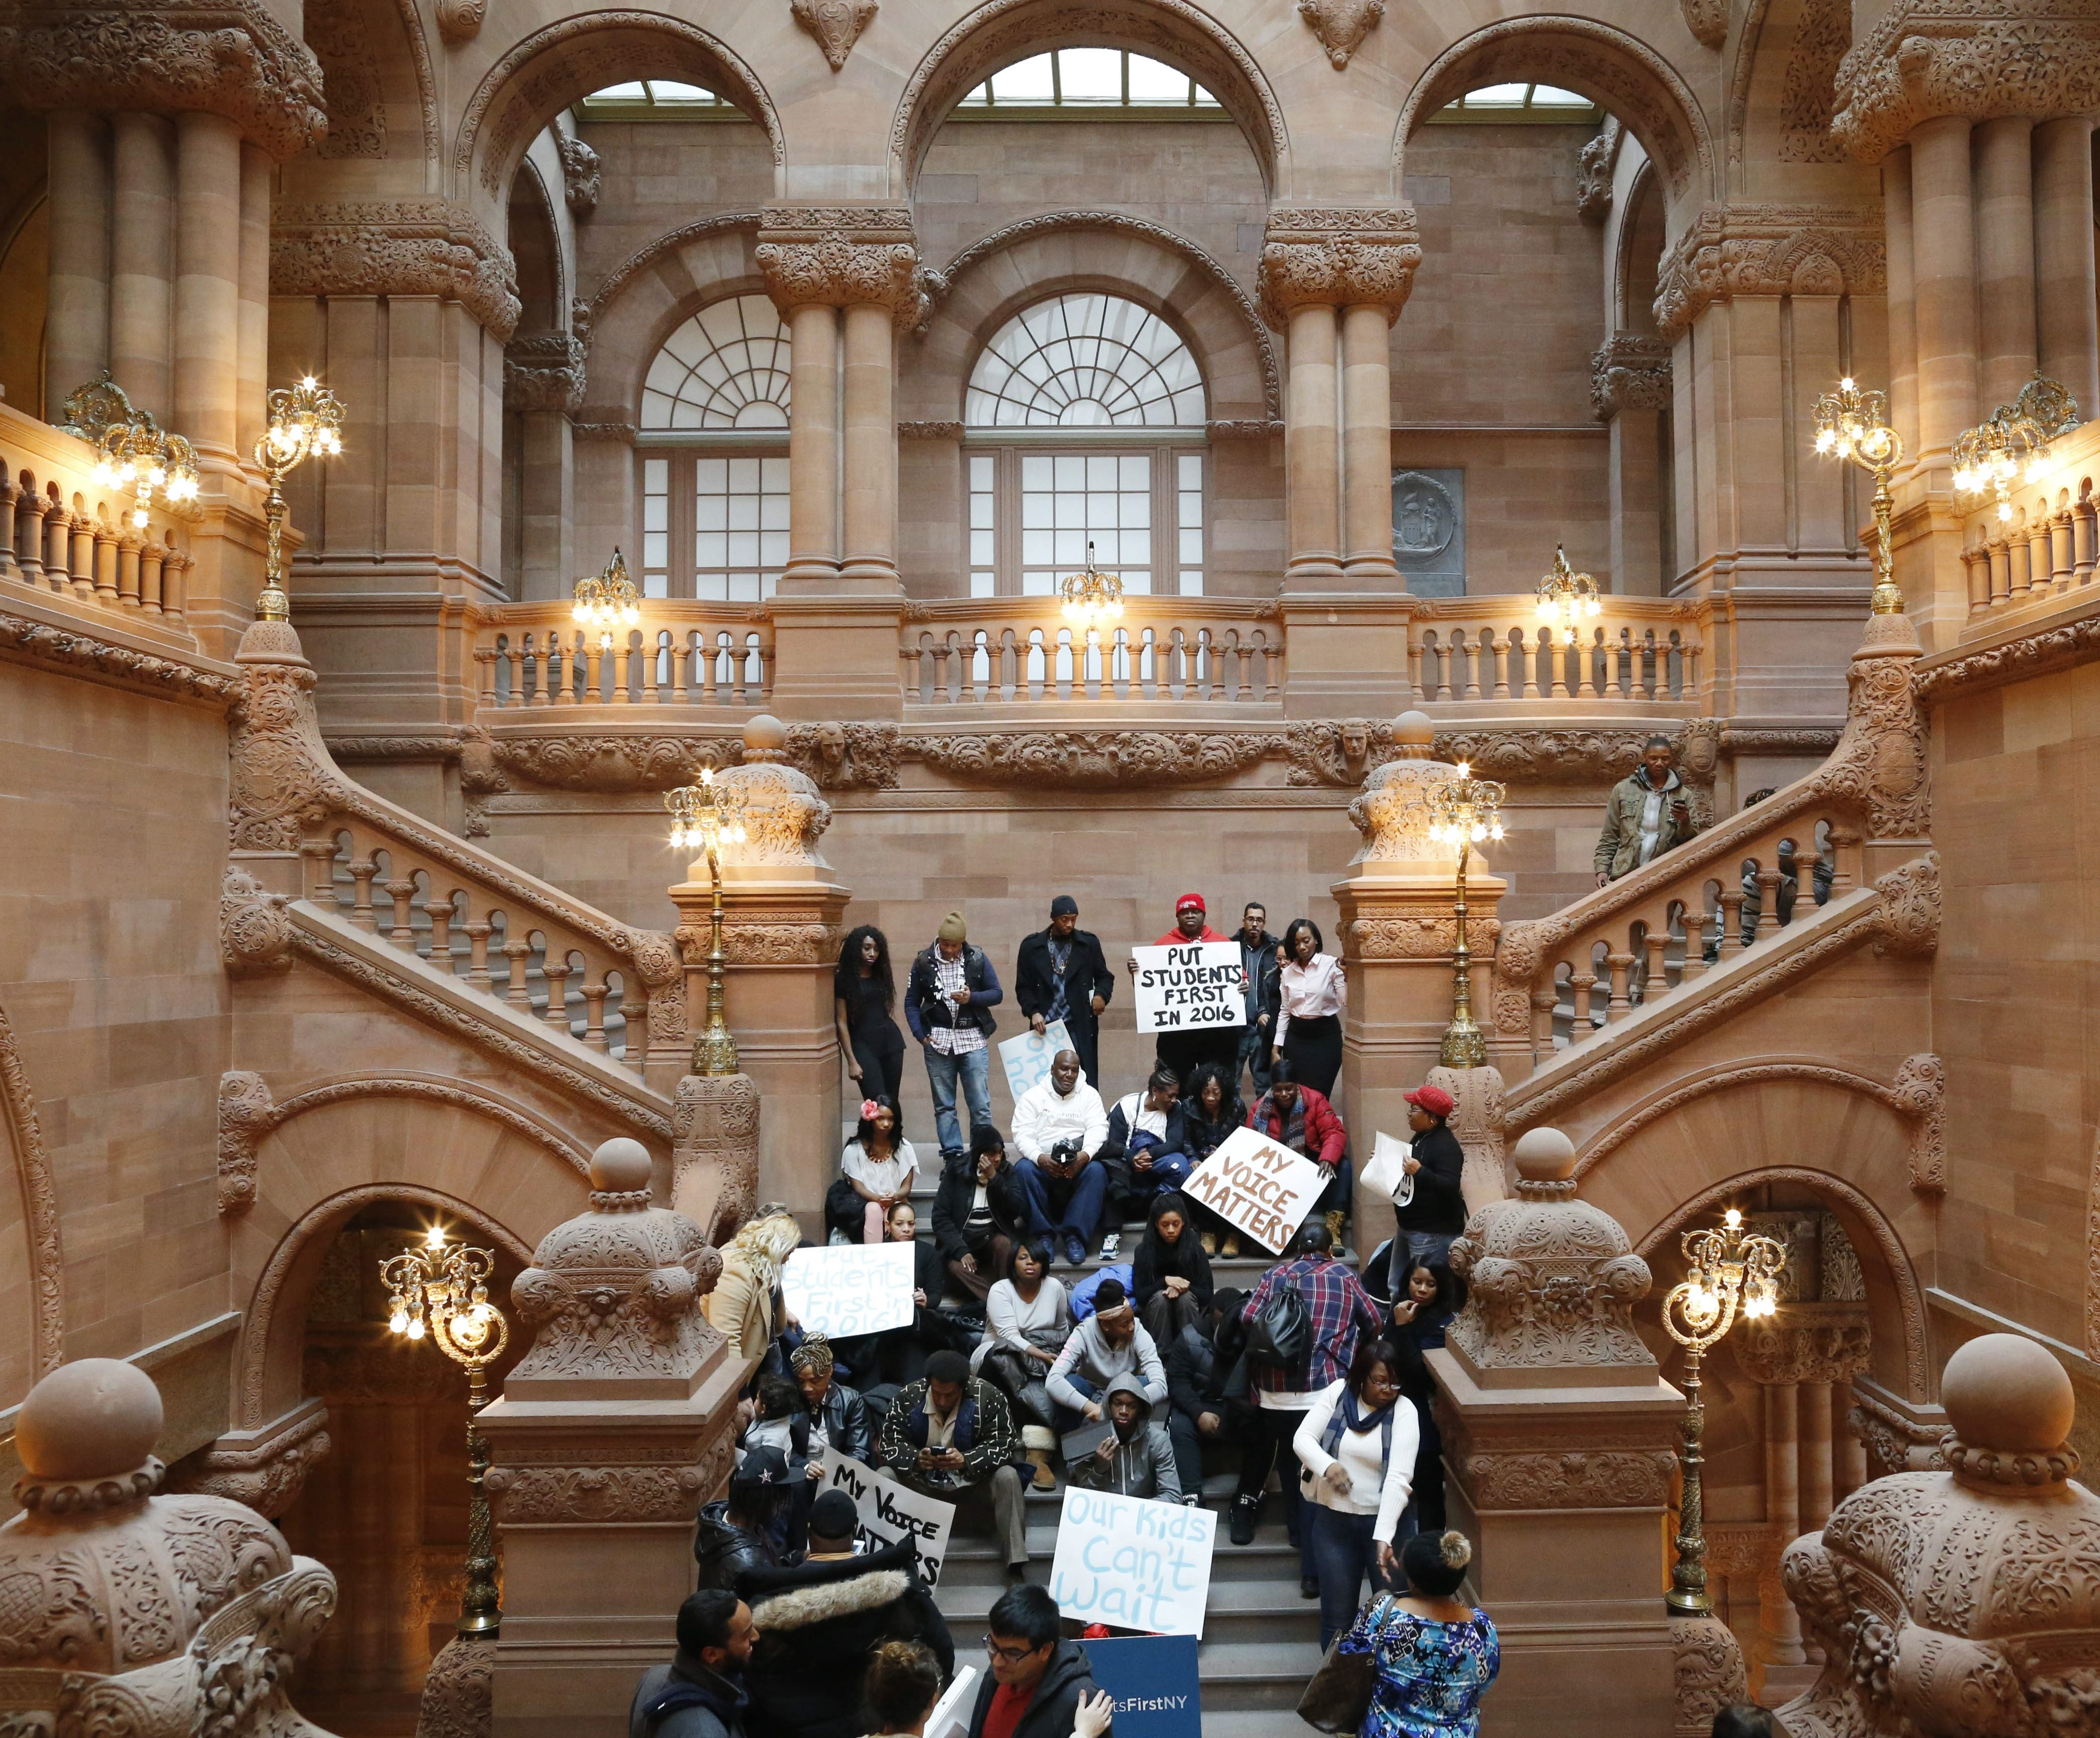 """On the eve of the governor's State of the State address, the advocacy group Students First NY holds a rally on the """"Million Dollar Staircase"""" in the State Capitol in an effort to put education issues in the spotlight."""